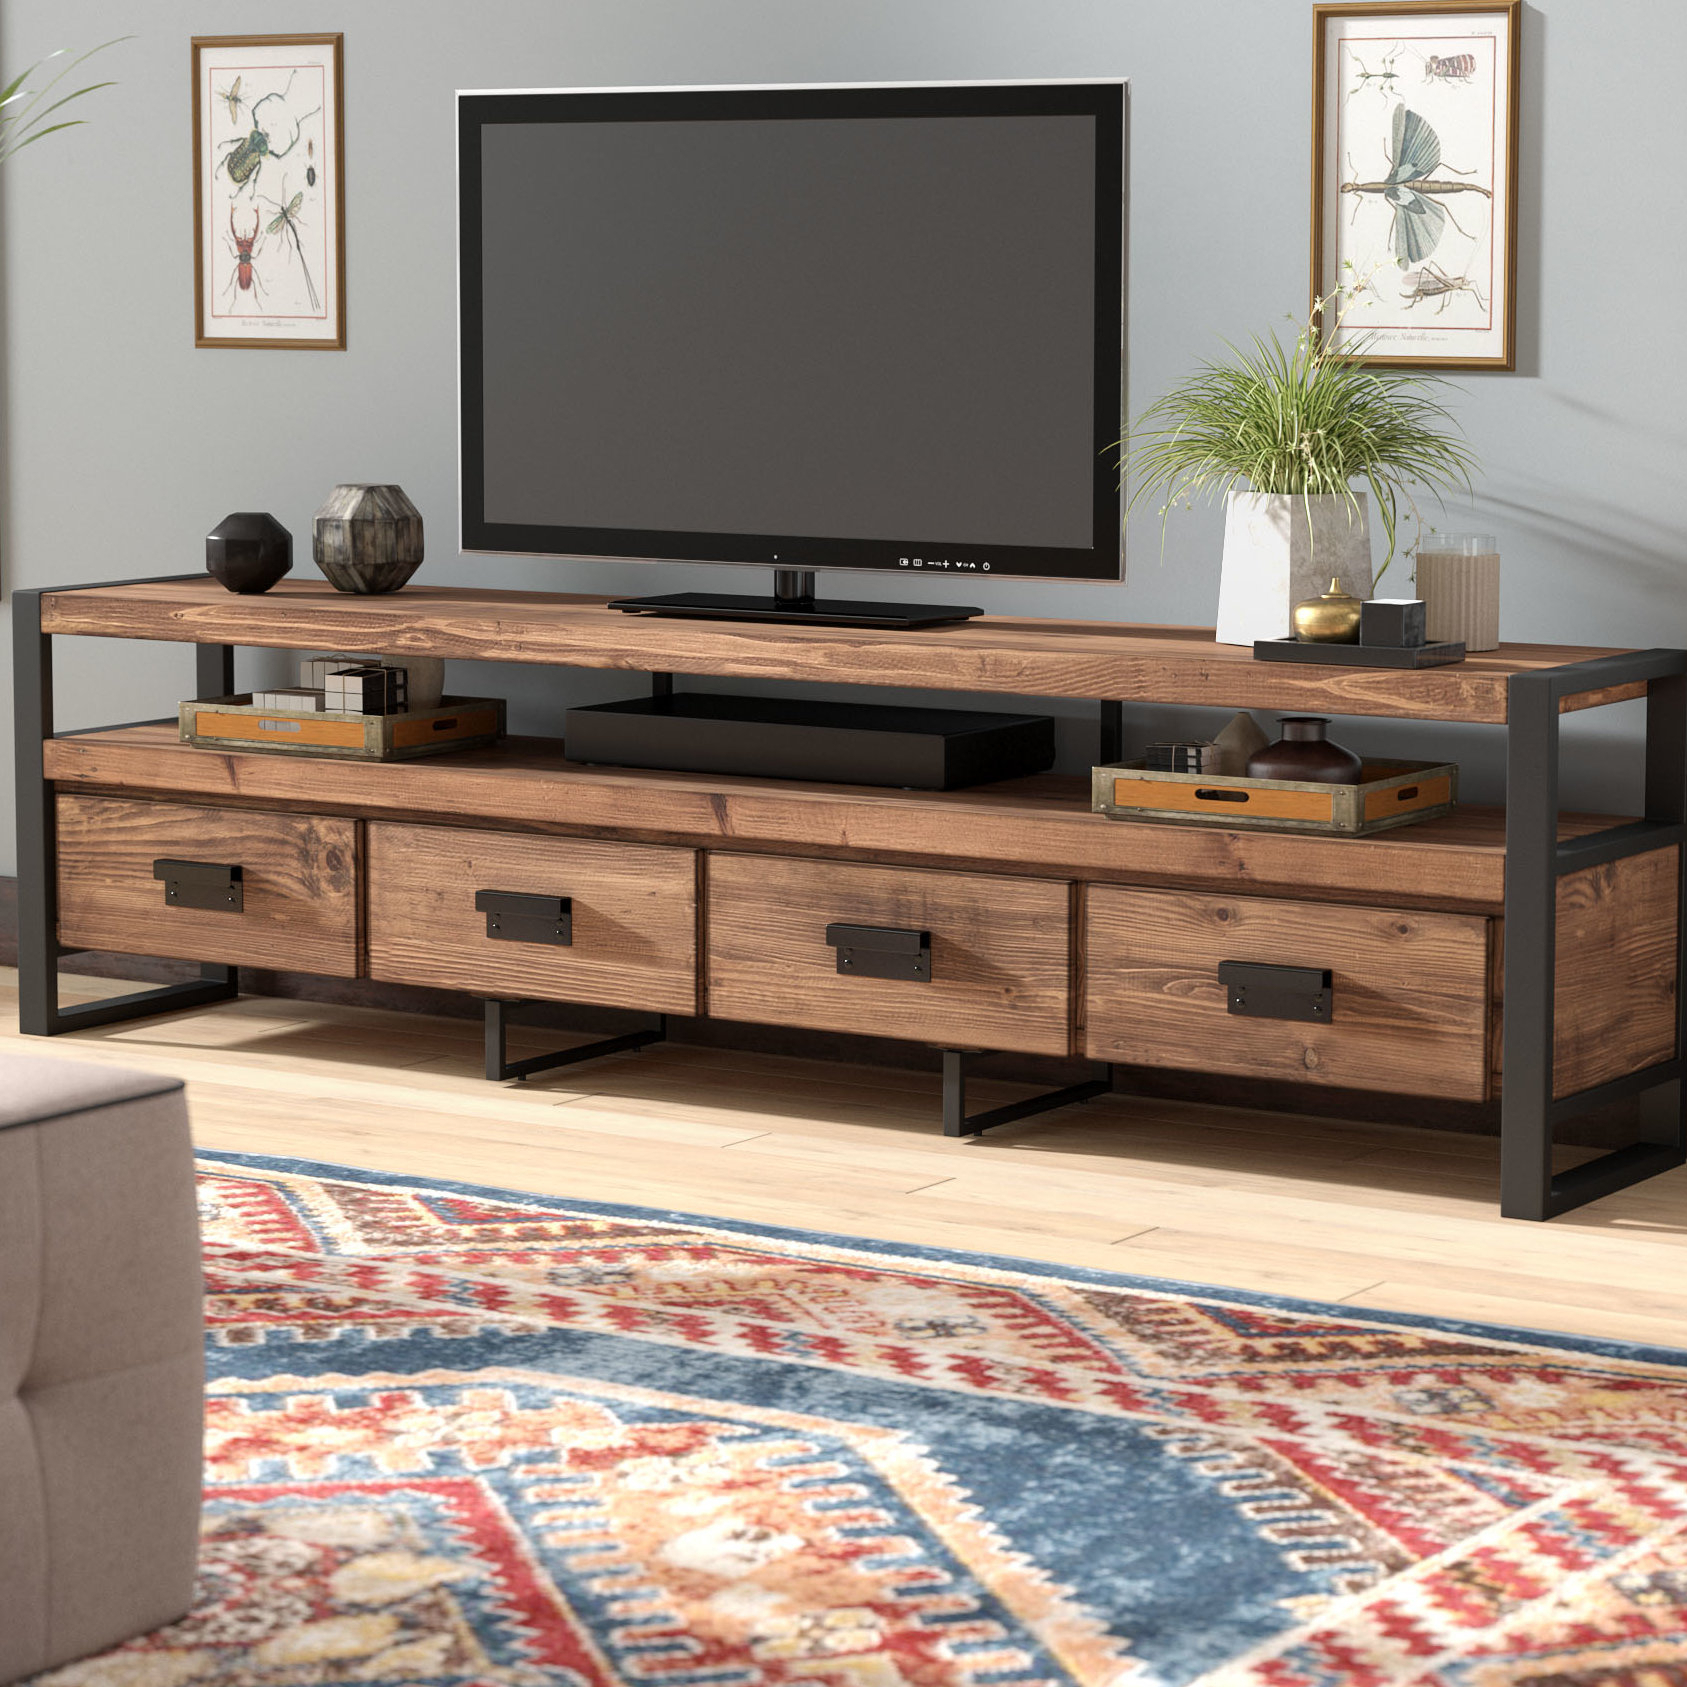 Industrial Tv Stands You'll Love | Wayfair intended for Walton Grey 72 Inch Tv Stands (Image 13 of 30)